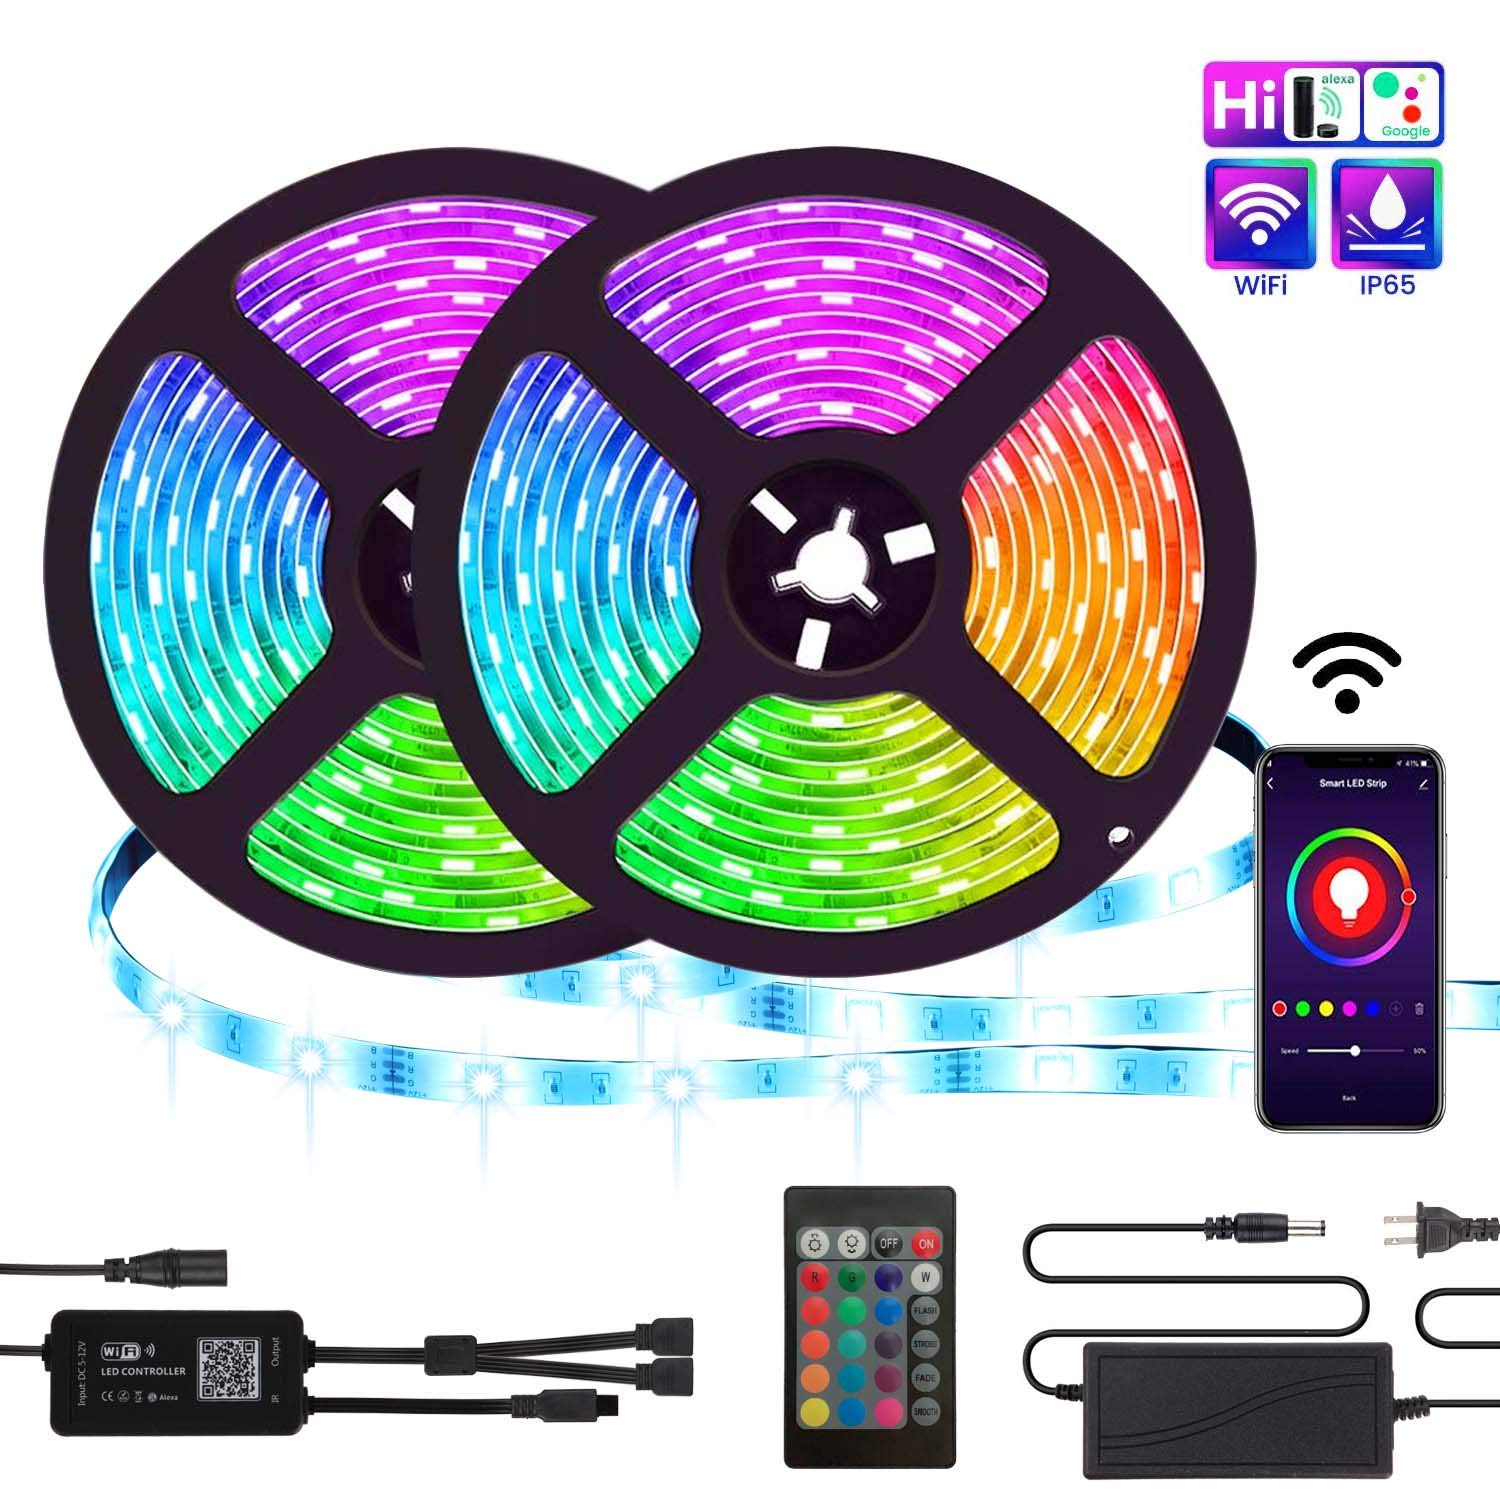 LED Strip Lights, TATUFY WiFi 32.8ft/10M 300LEDs Color Changing Rope Lights 5050 RGB Light Strips with Alexa Google APP Controller, Waterproof Tape Lights Sync with Music Apply for Home Kitchen by TATUFY